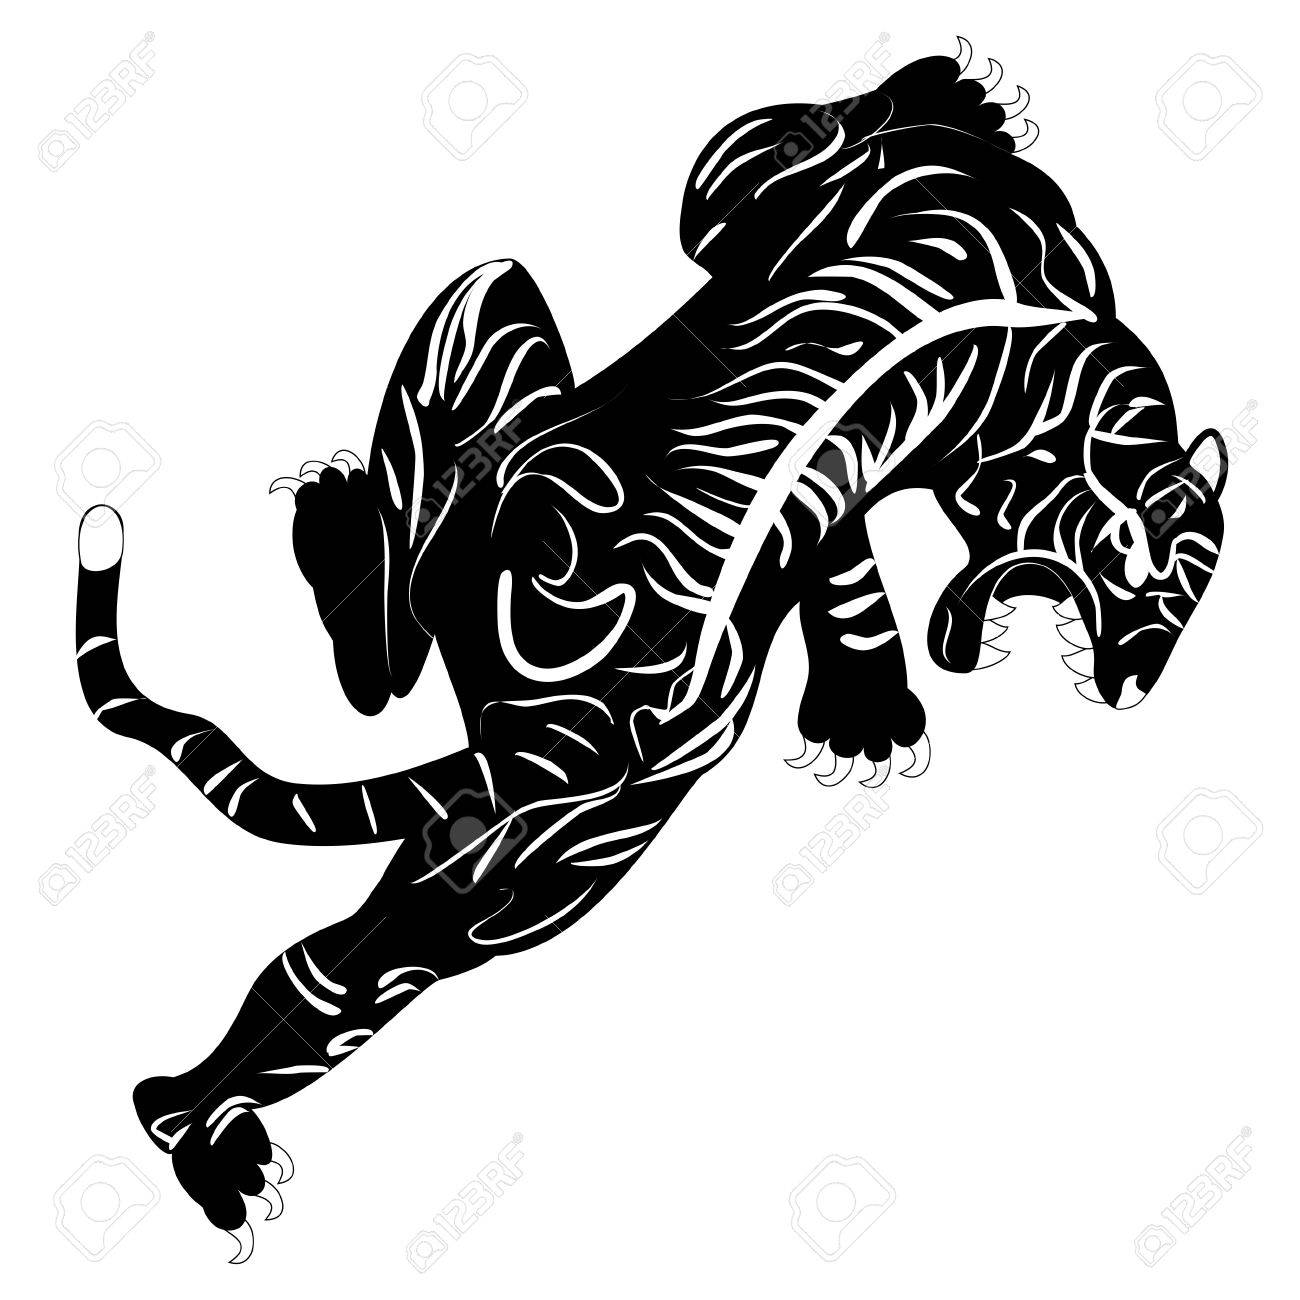 Black And White Monochrome Image Of Tiger Tattoo Royalty Free